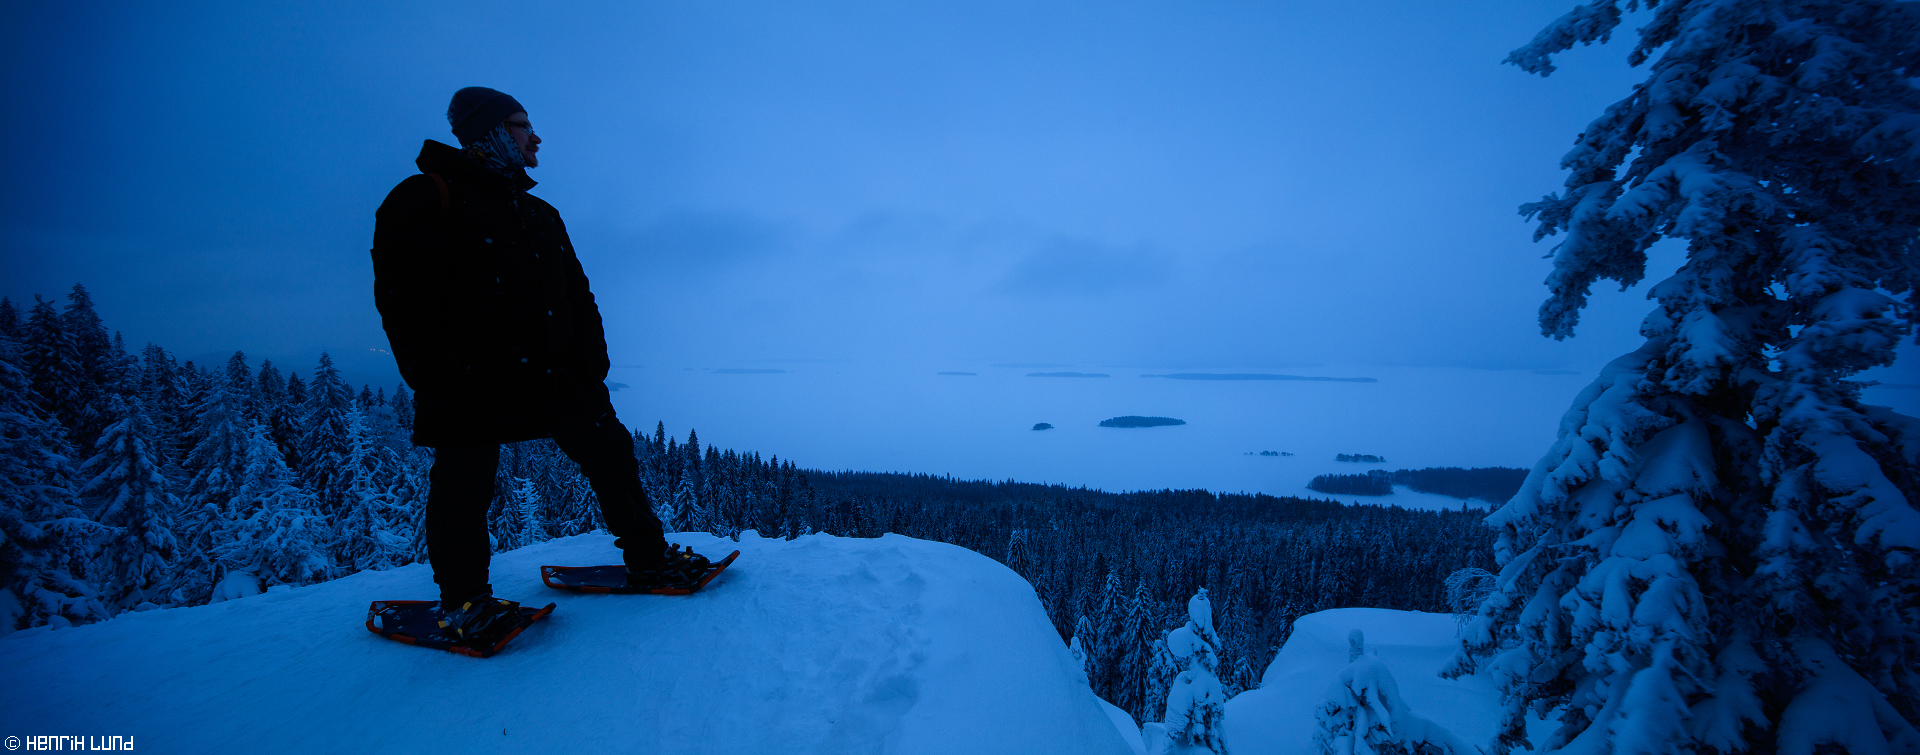 Panoramic view over Pielinen from Koli - Basse on snowshoes posing, Lieksa, Finland. February 2016.